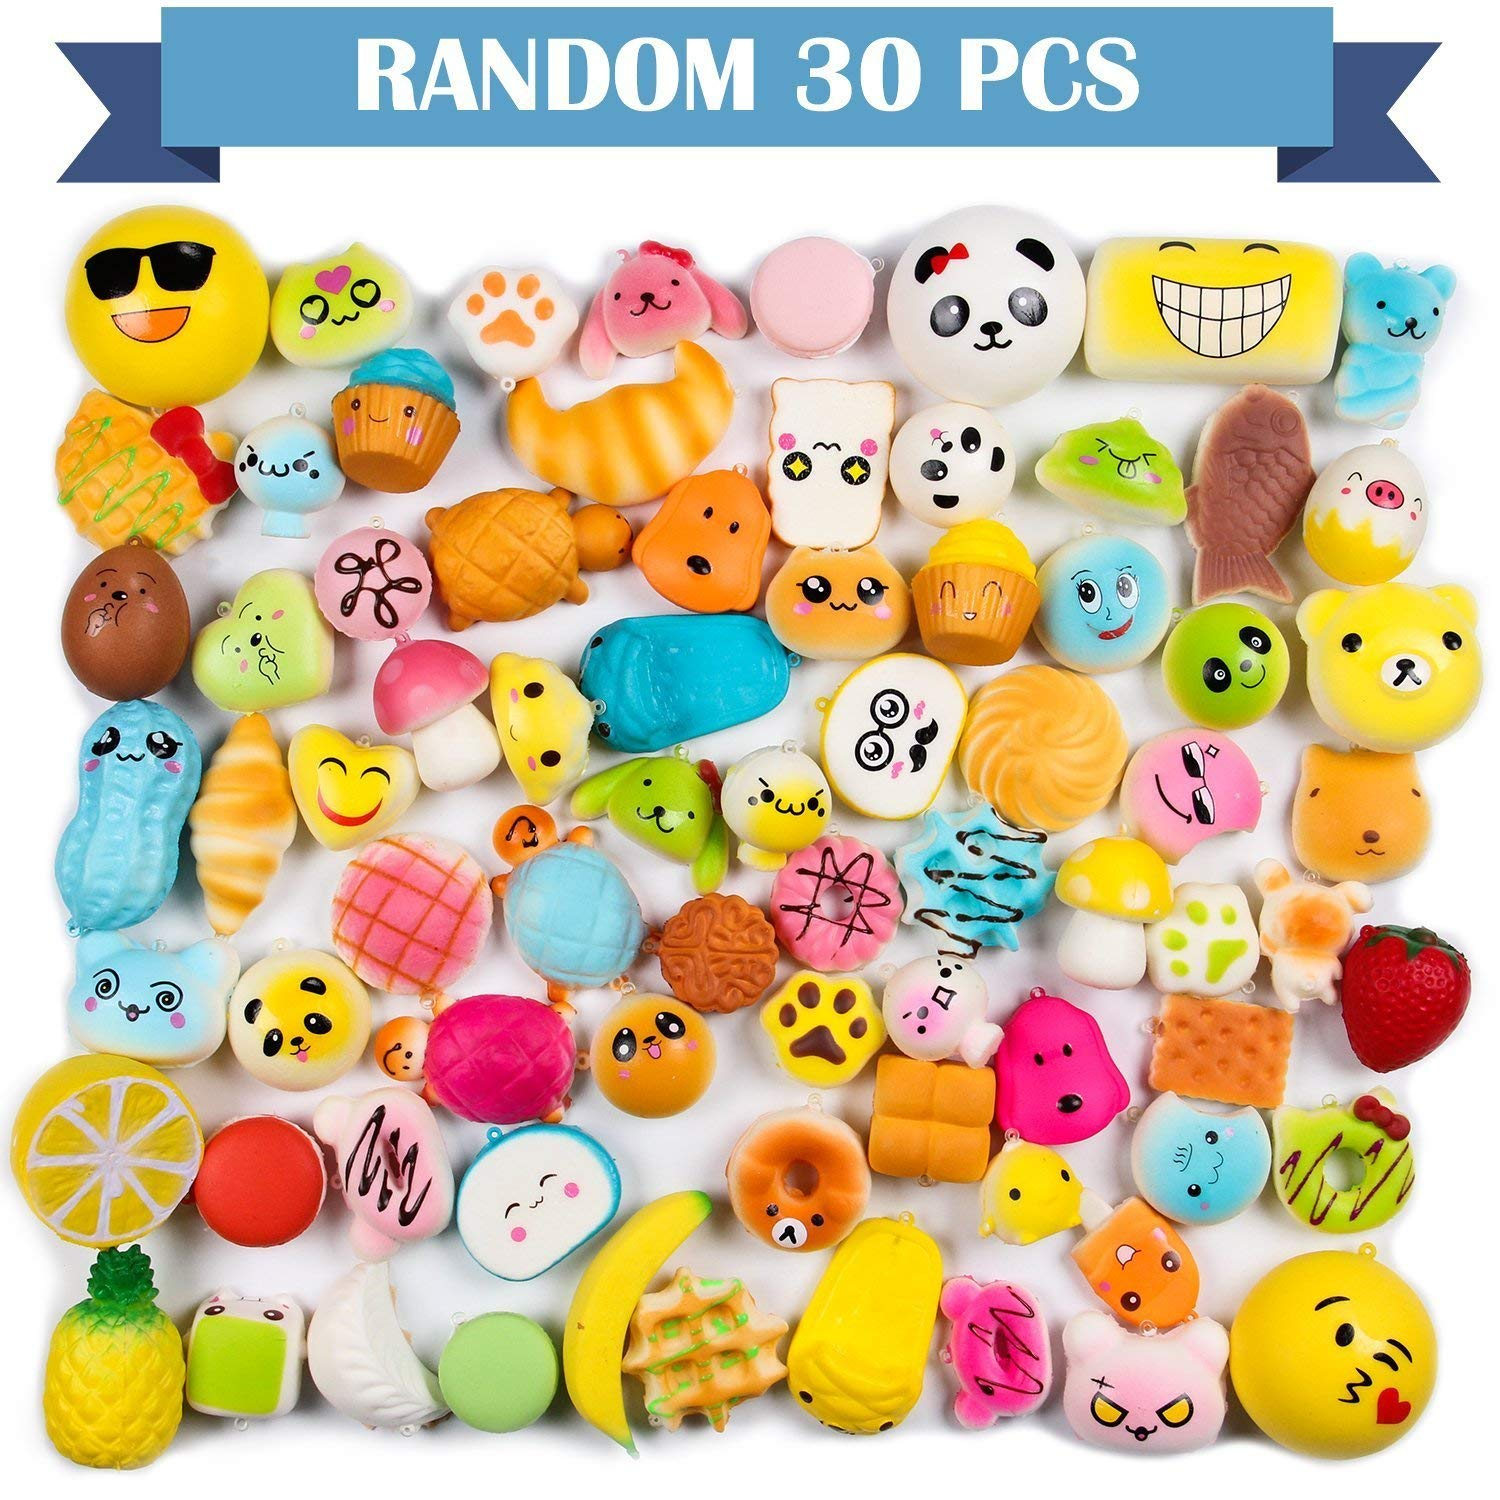 WATINC Random 70 Pcs Squishies, Birthday Gifts for Kids Party Favors, 30 Pcs Kawaii Simulation Bread Squishies 40 Pcs Mochi Squishies Cat Panda Goodie Bags Egg Fillers, Keychain Phone Straps by WATINC (Image #3)